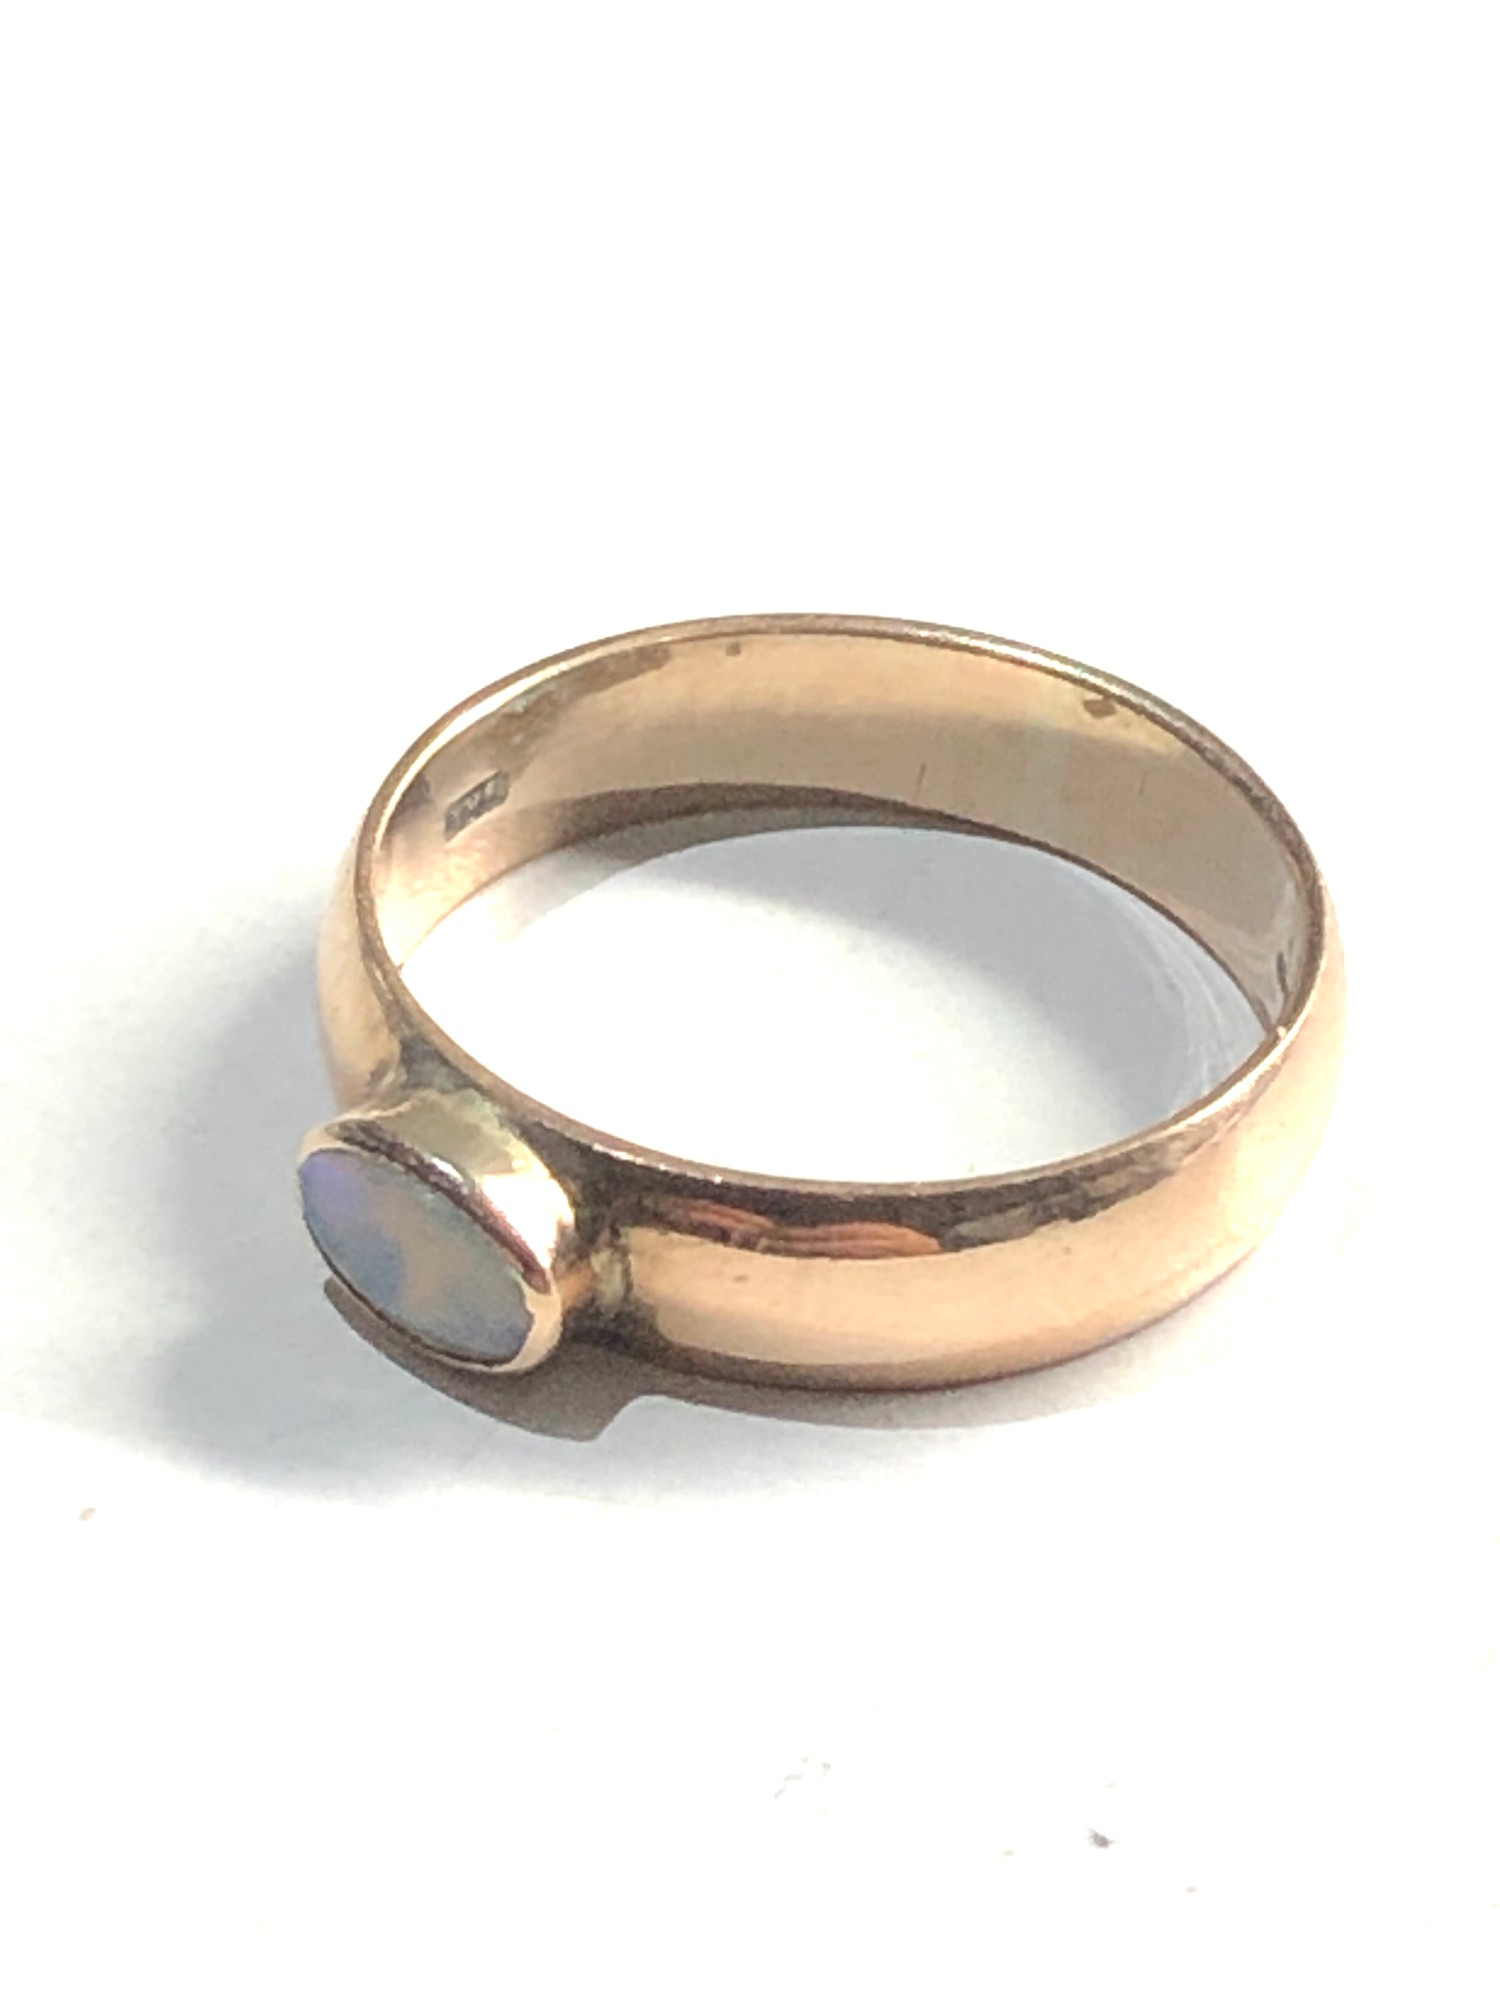 9ct Gold opal solitaire chunky band ring 2.9g - Image 2 of 3